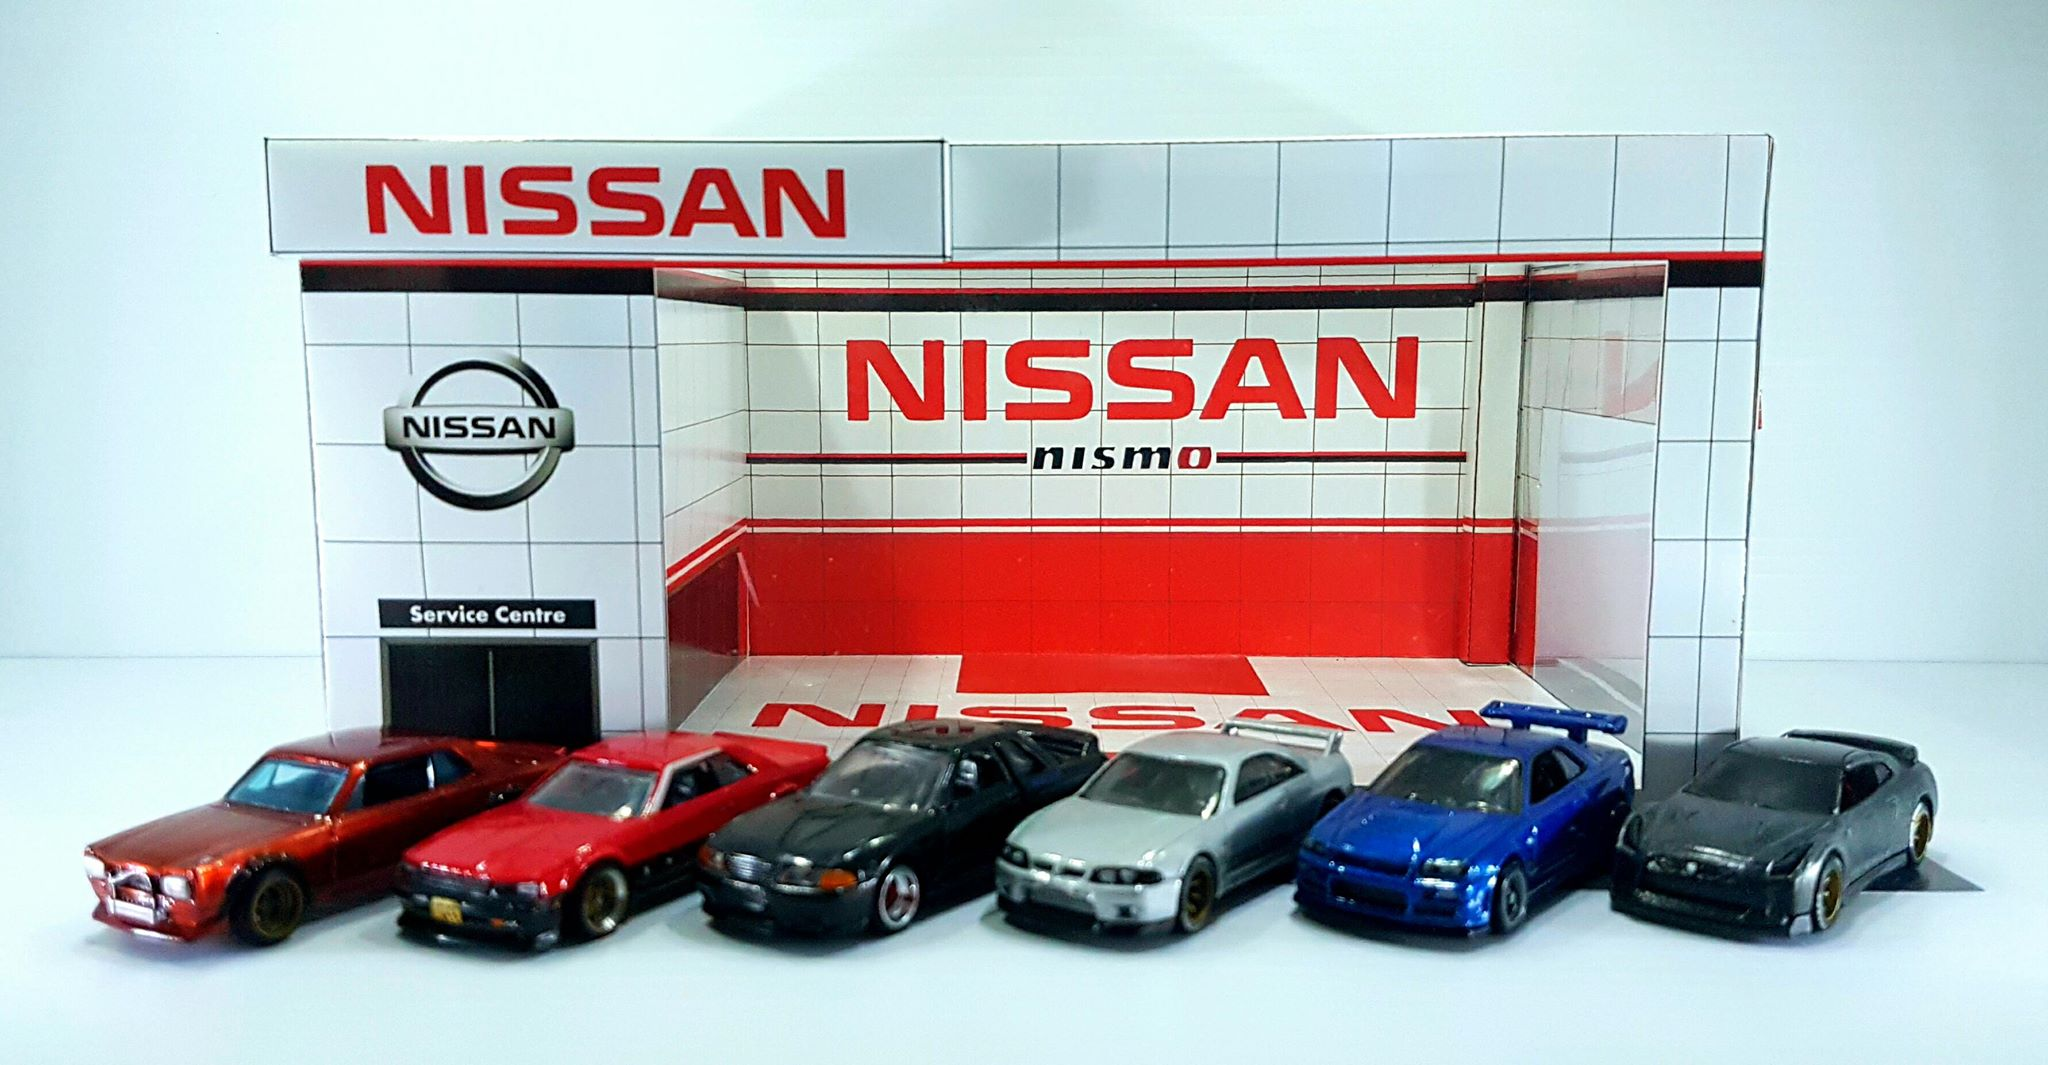 Car Dealerships | 1:64 Diorama Showroom for Hot Wheels & Diecast Cars